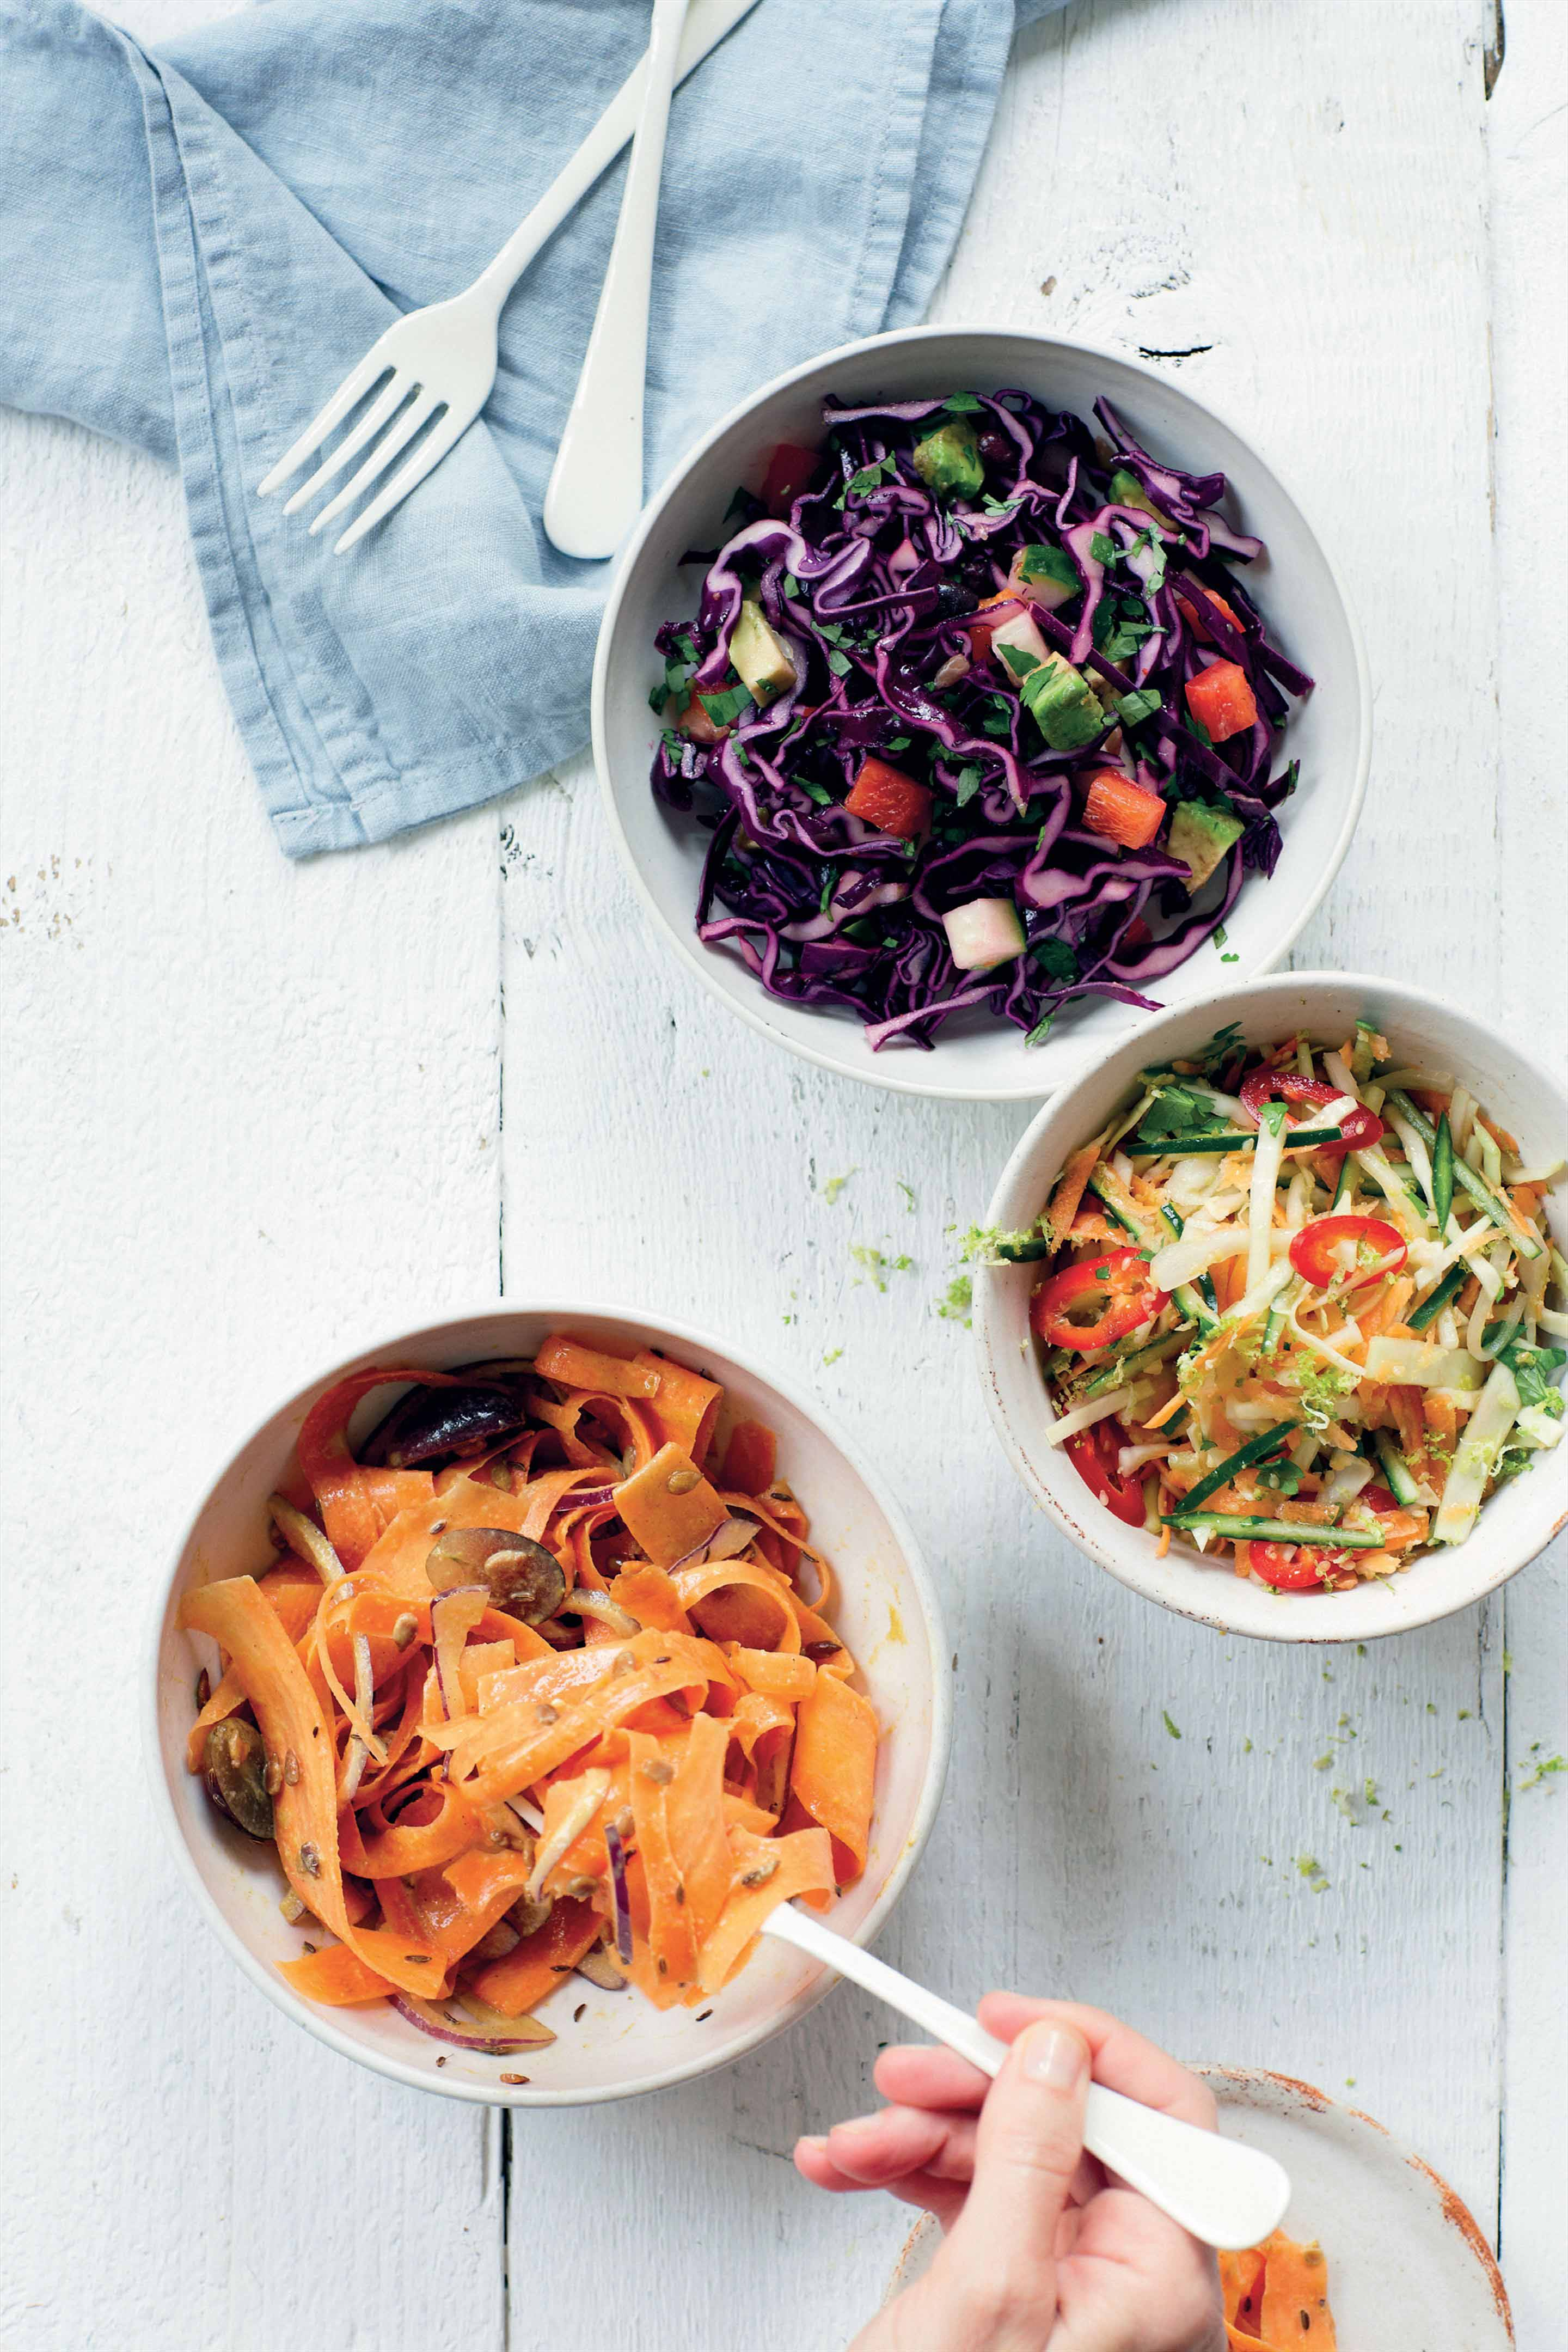 Jemima's Asian slaw salad